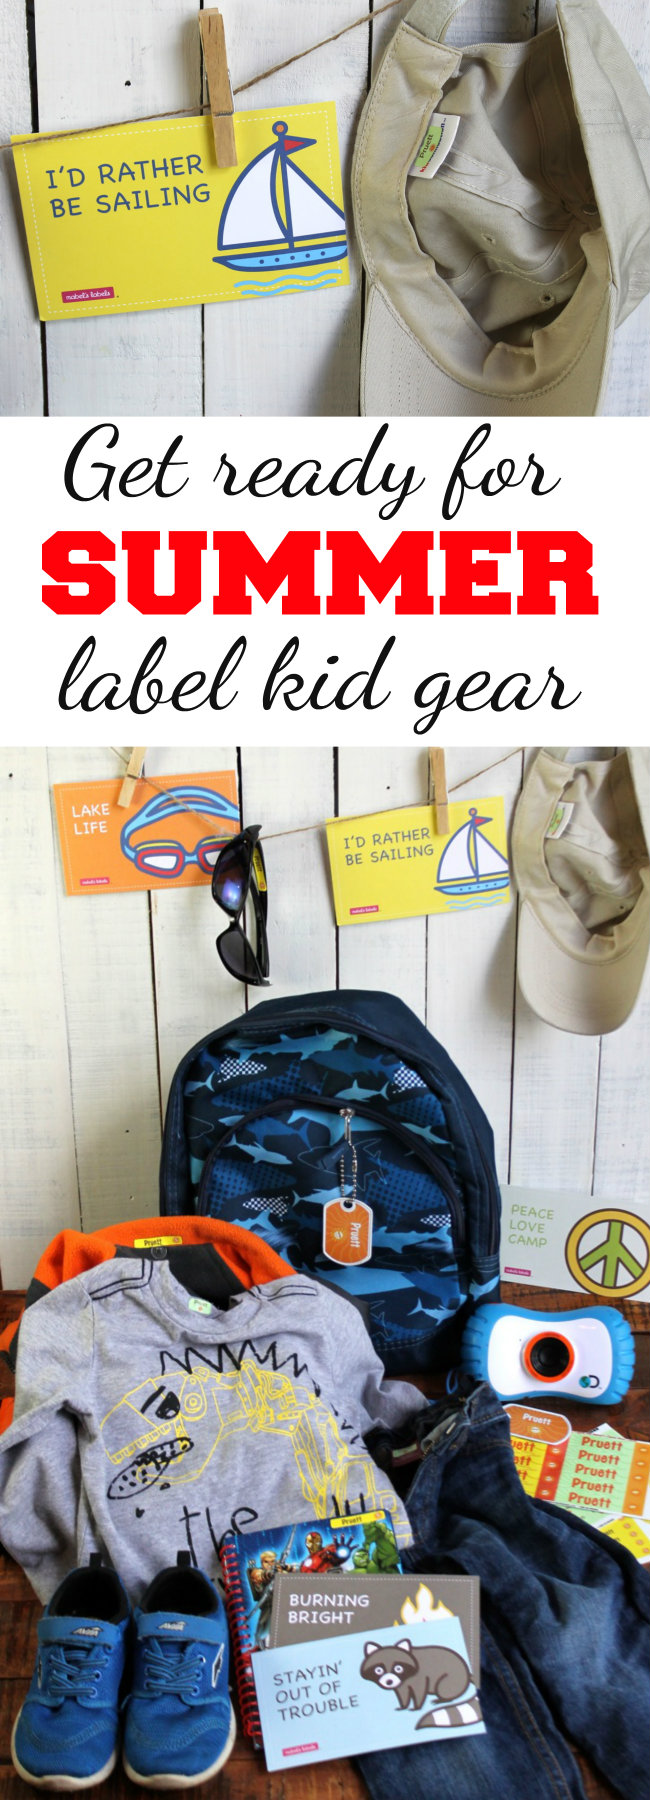 Get Ready for Summer - Label Kid Gear Tips and Resources from HappyandBlessedHome.com